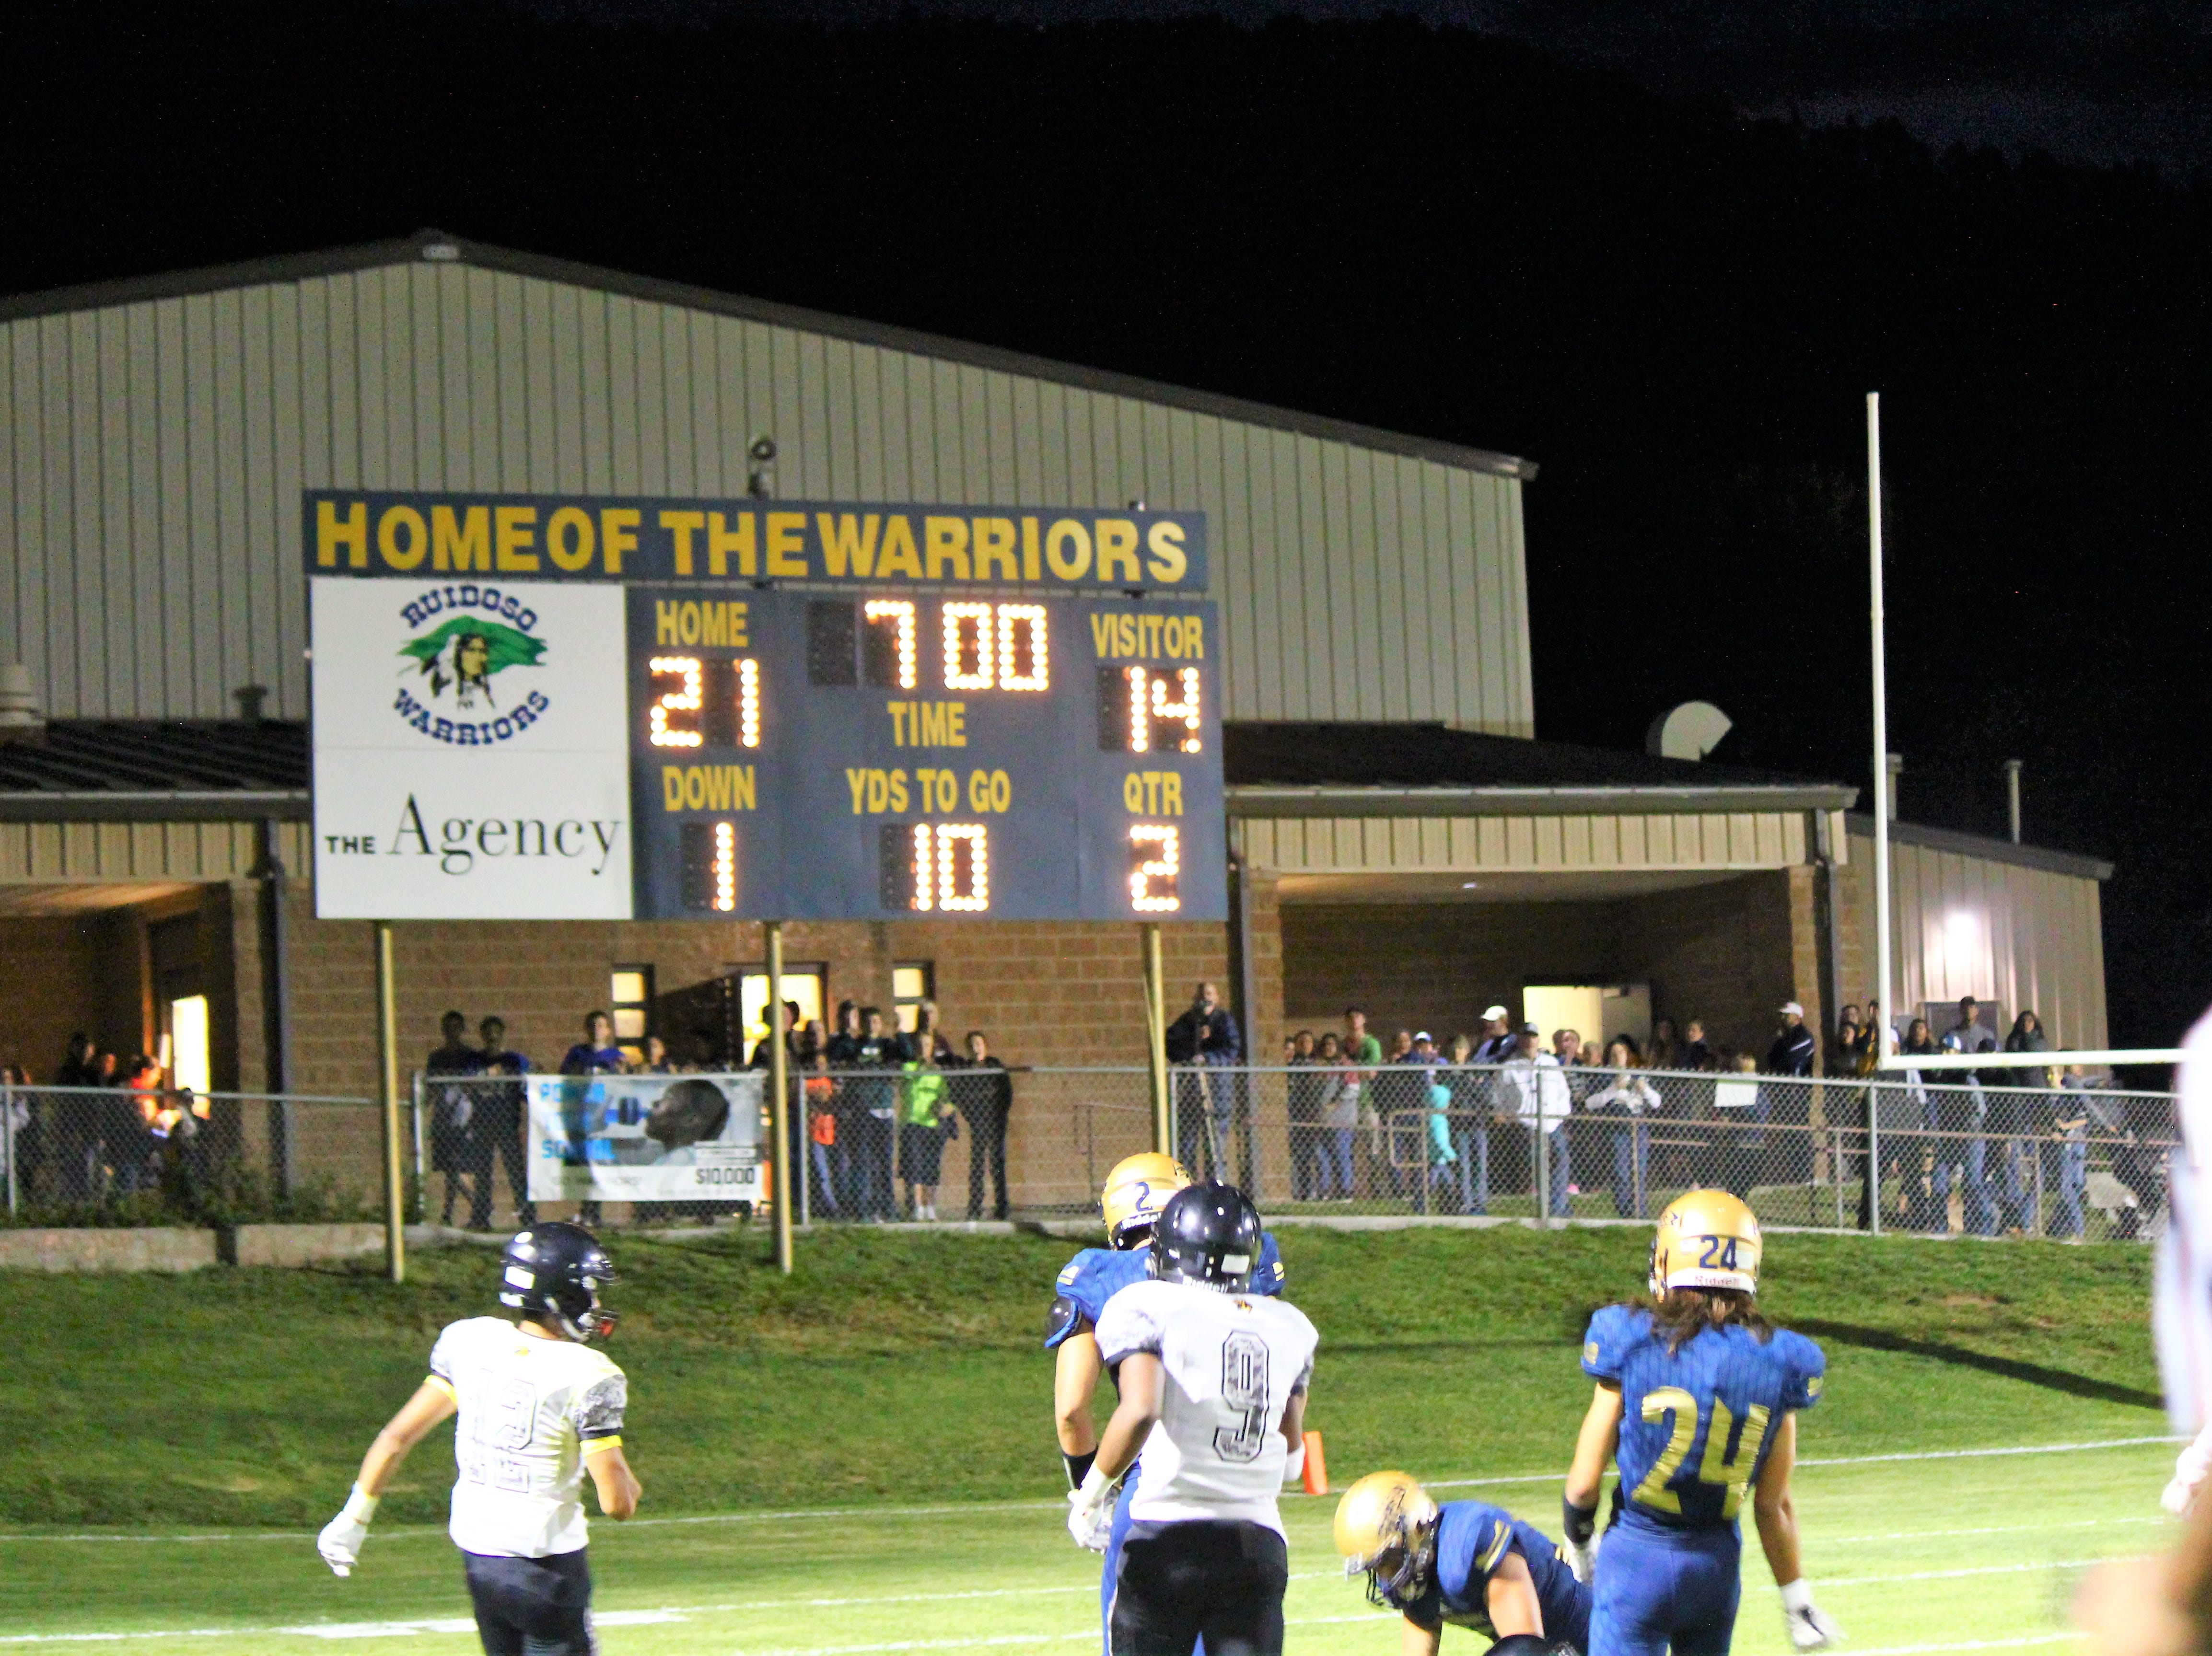 Ruidoso Warriors dominate the game in the second quarter.